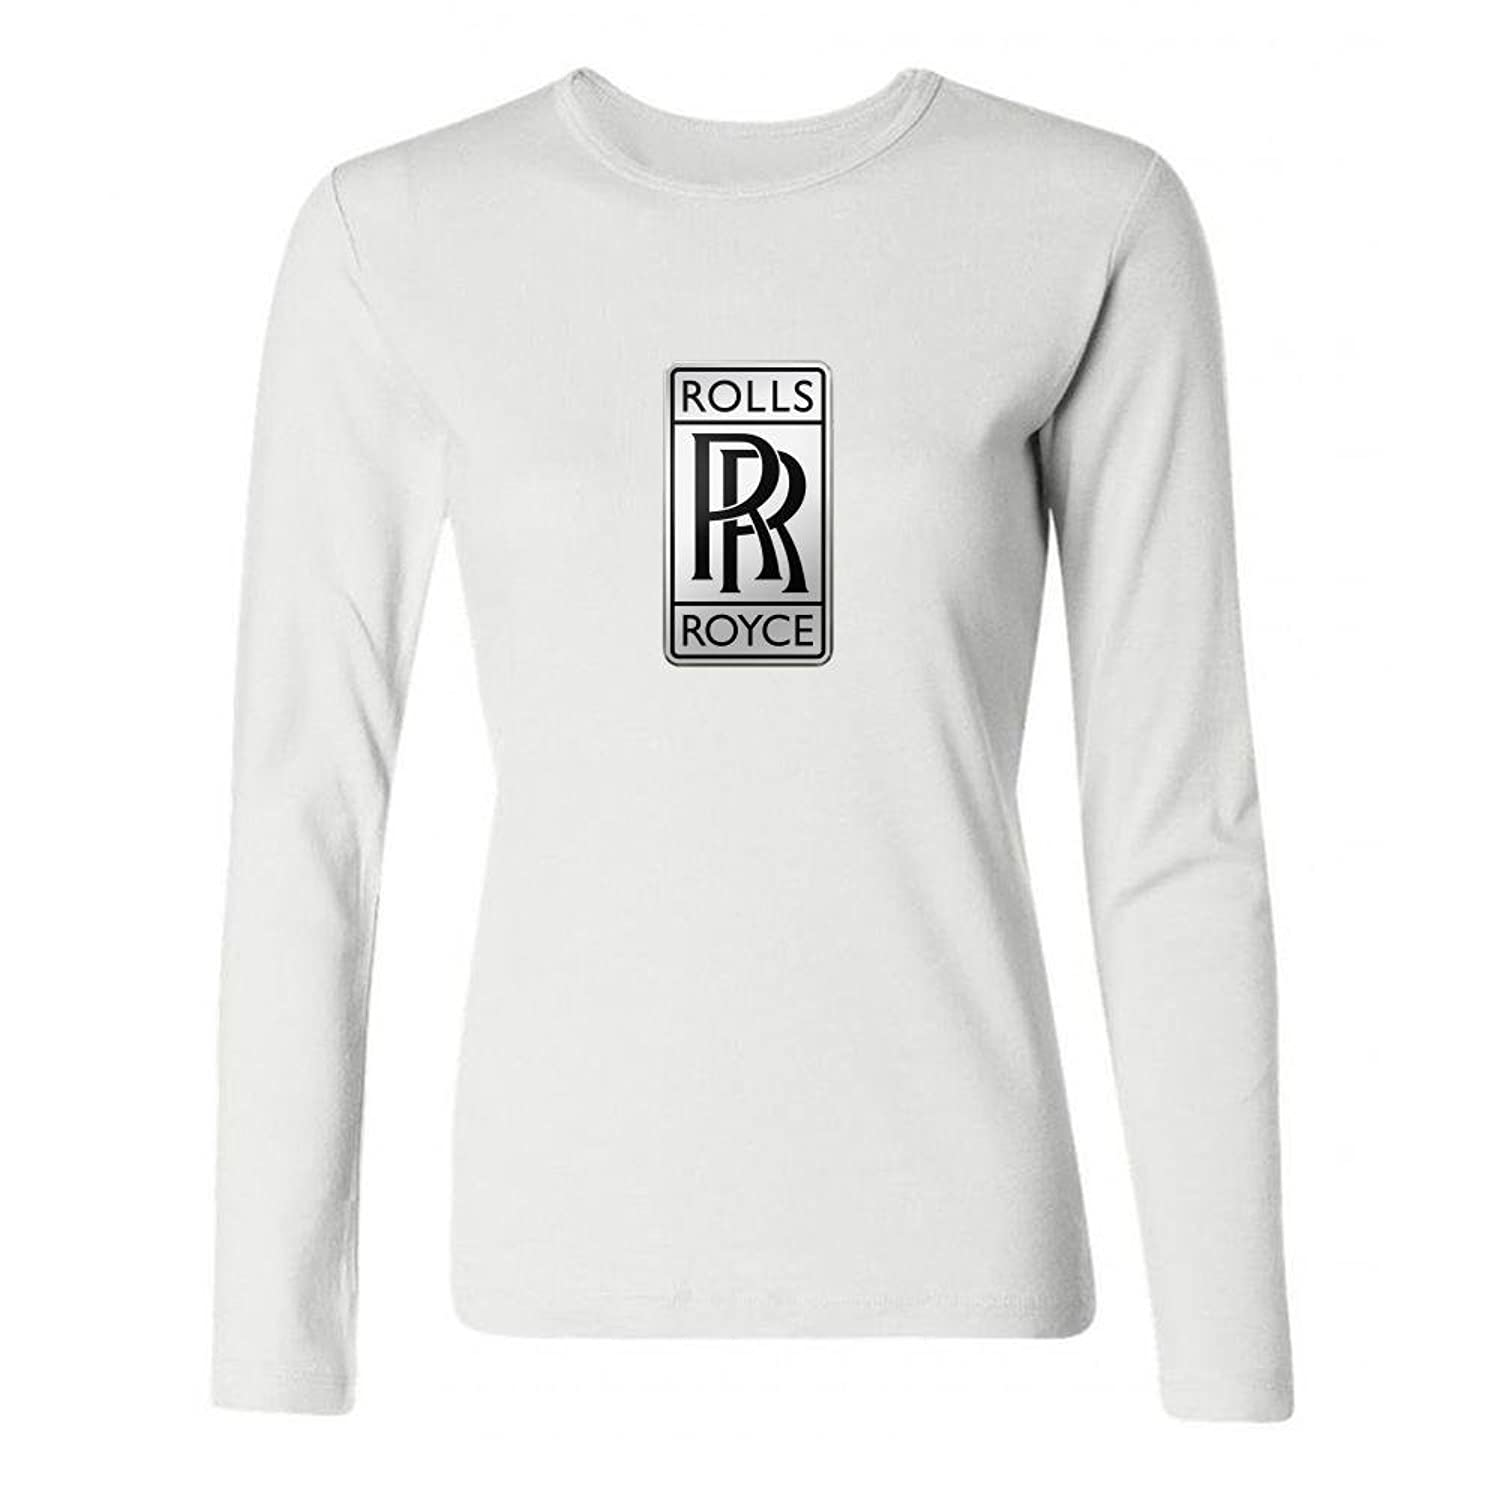 Fashion Design WorldAuto Logo Rolls Royce Women's Long Sleeve T-Shirt